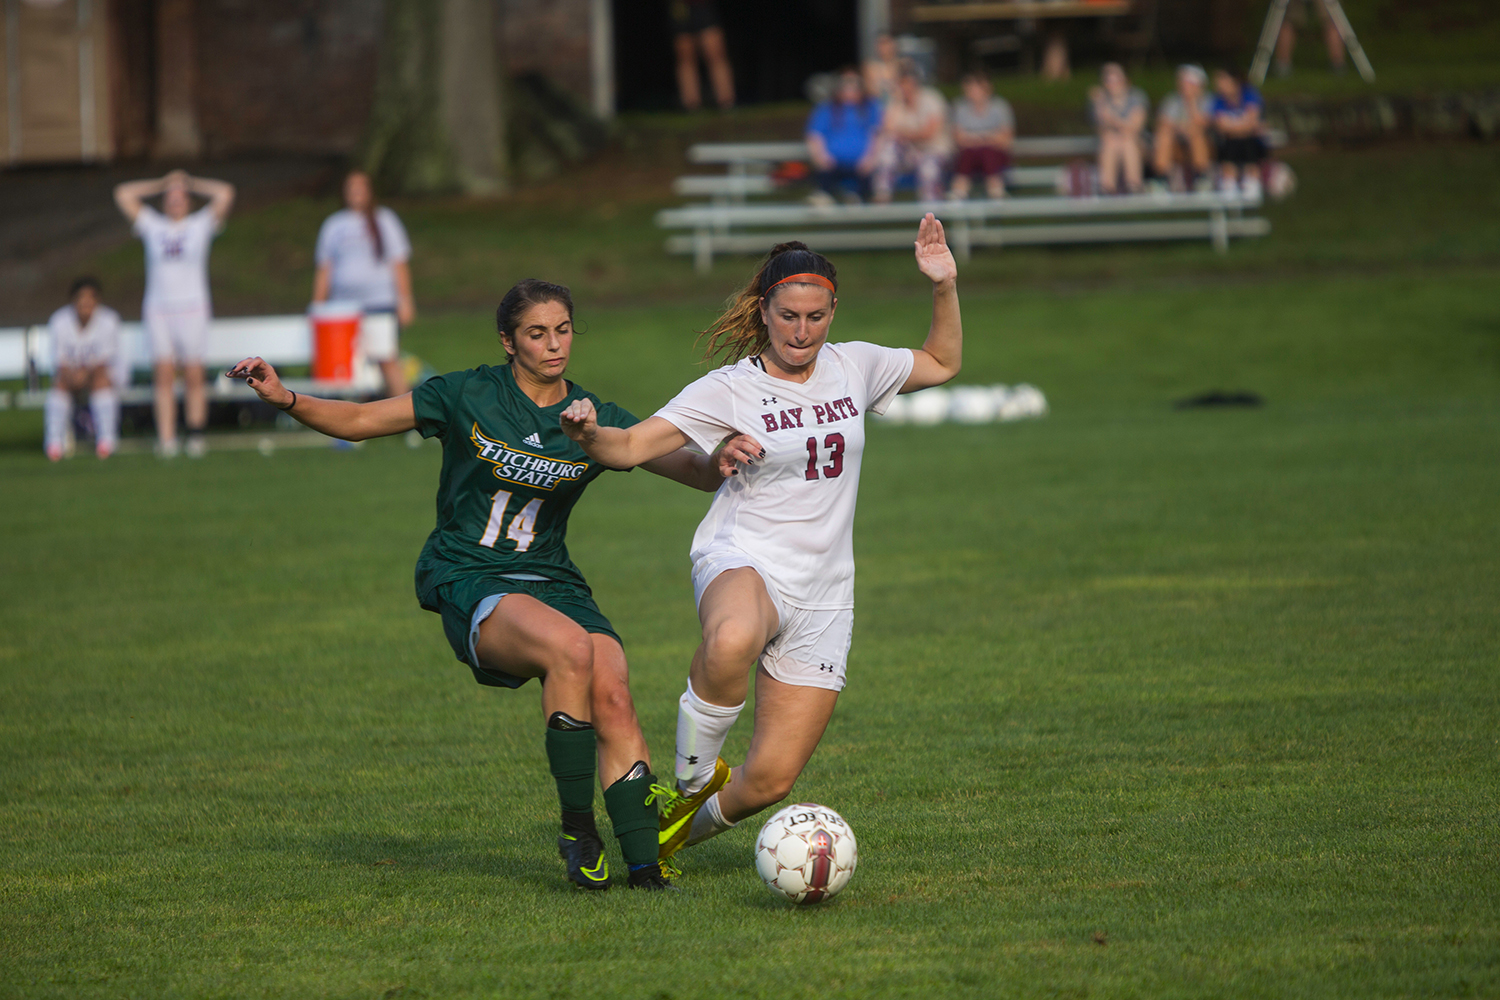 Bay Path scores late to defeat Southern Vermont 1-0